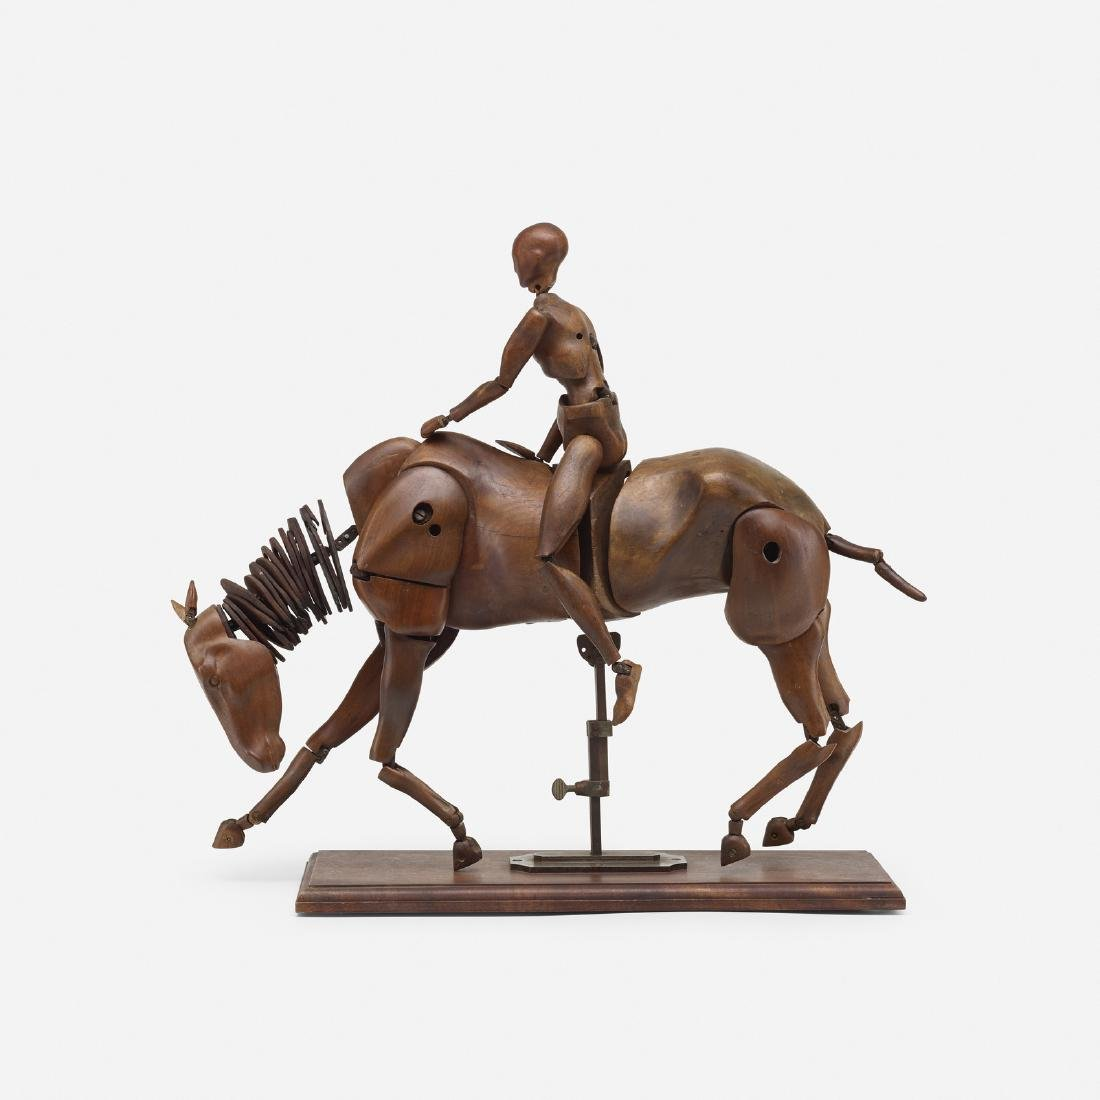 French, rare articulated horse, rider artist's models - 2